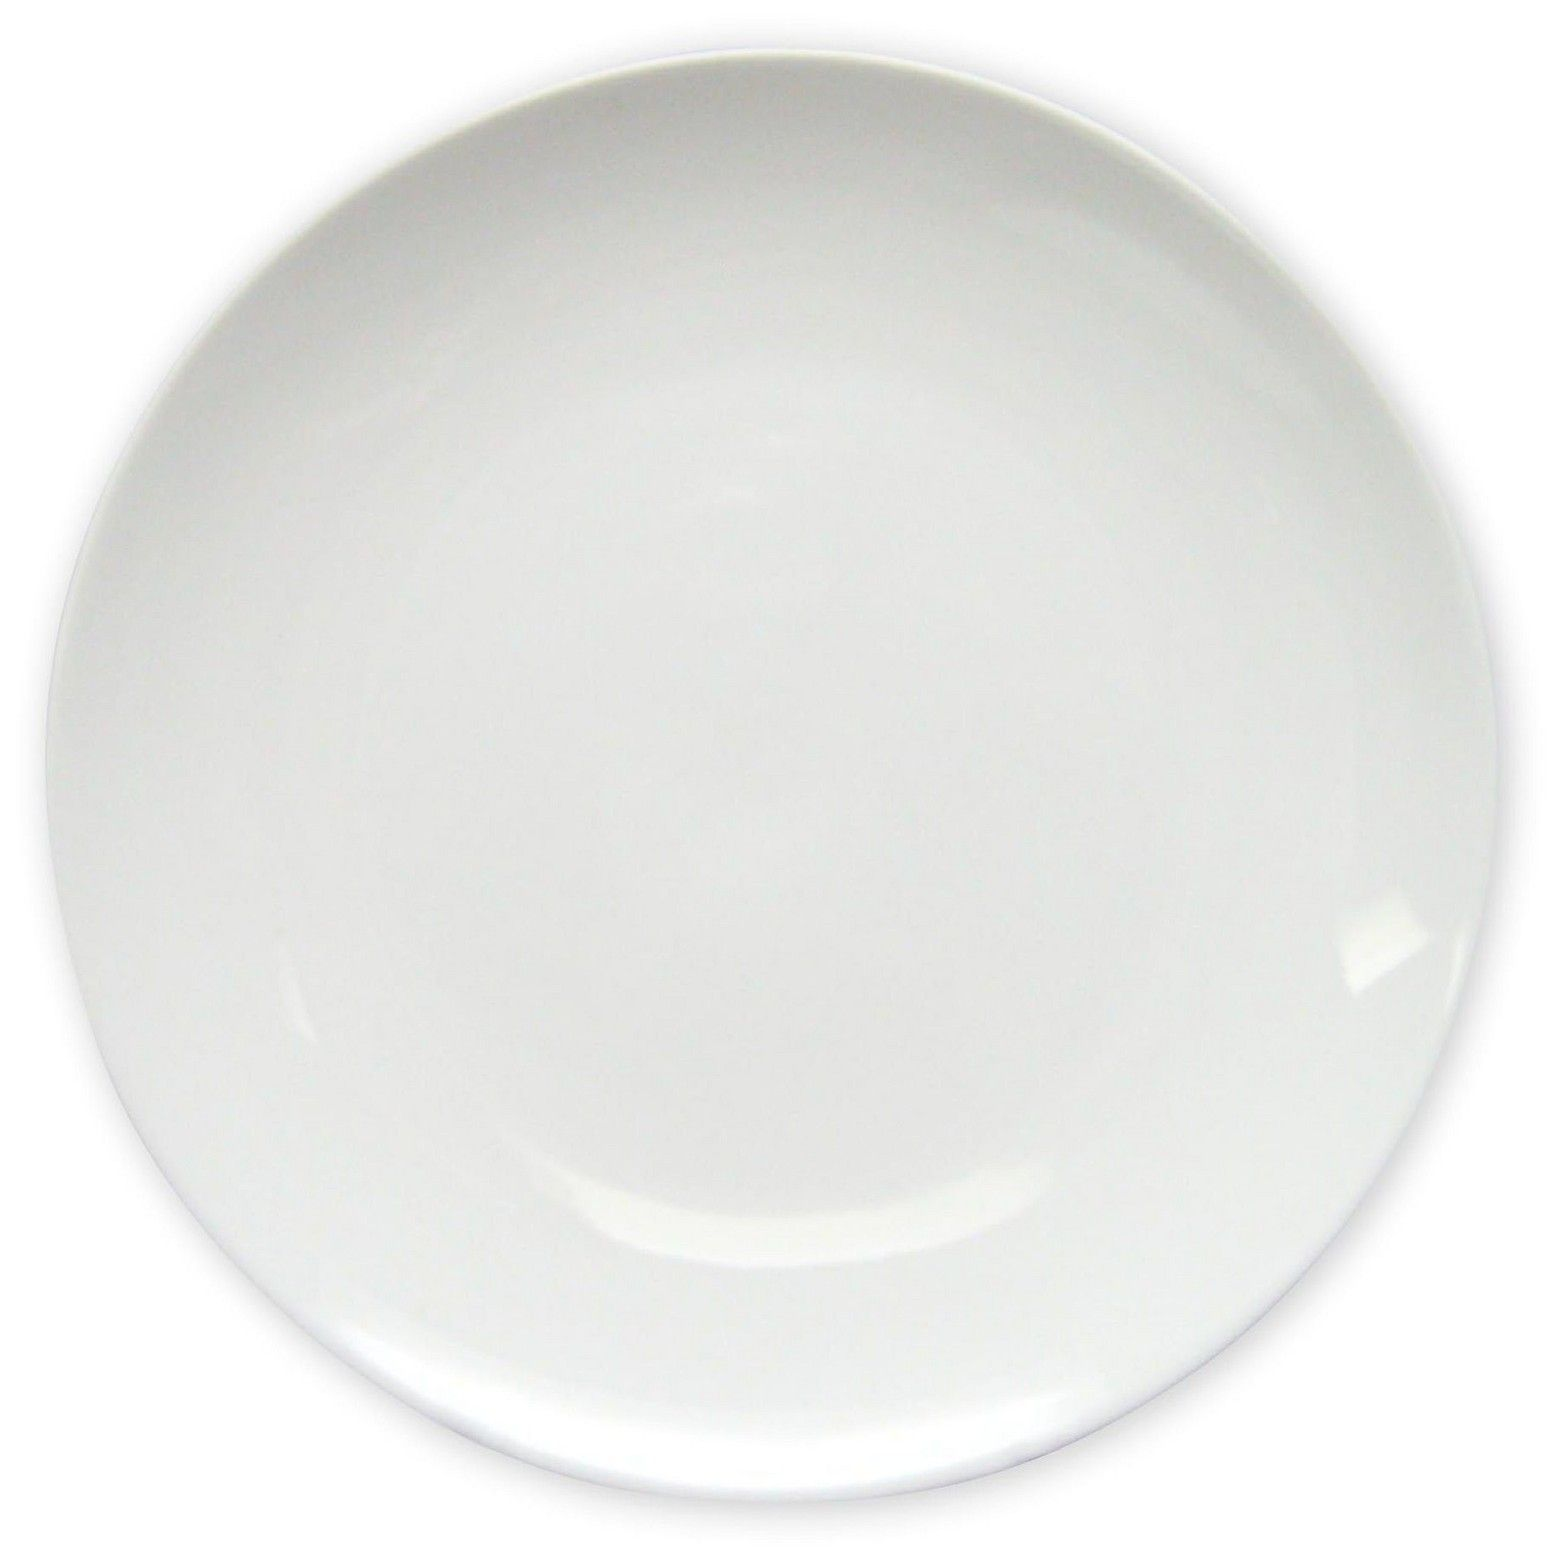 10 Stoneware Coupe Dinner Plate White Project 62 White Dinner Plates Plates Dinner Plates